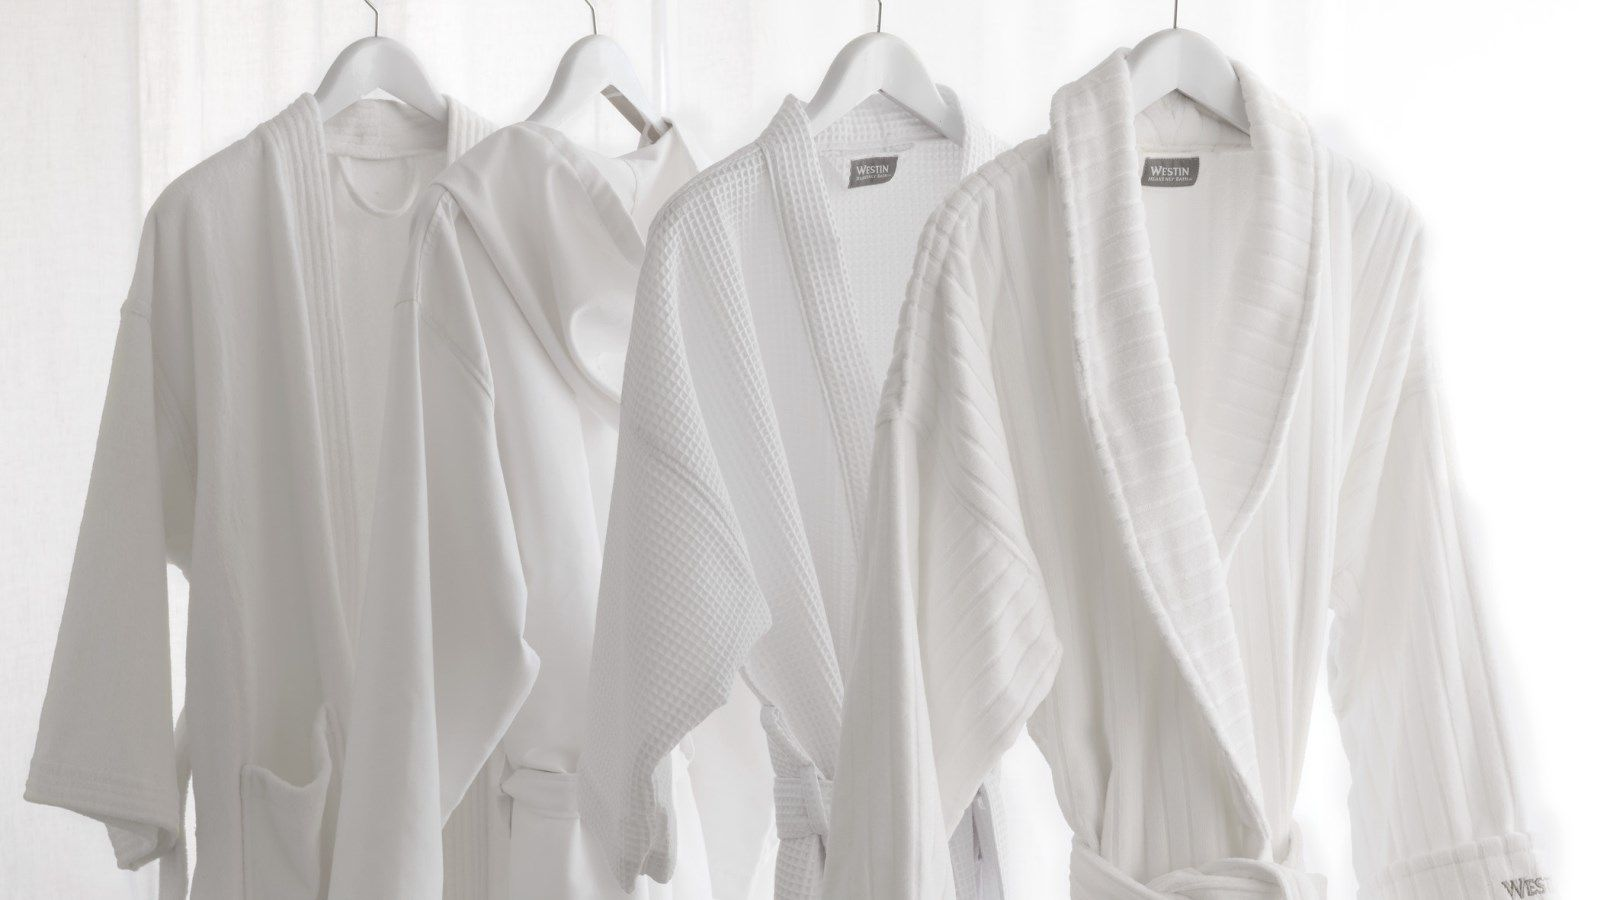 elopement package - westin robes